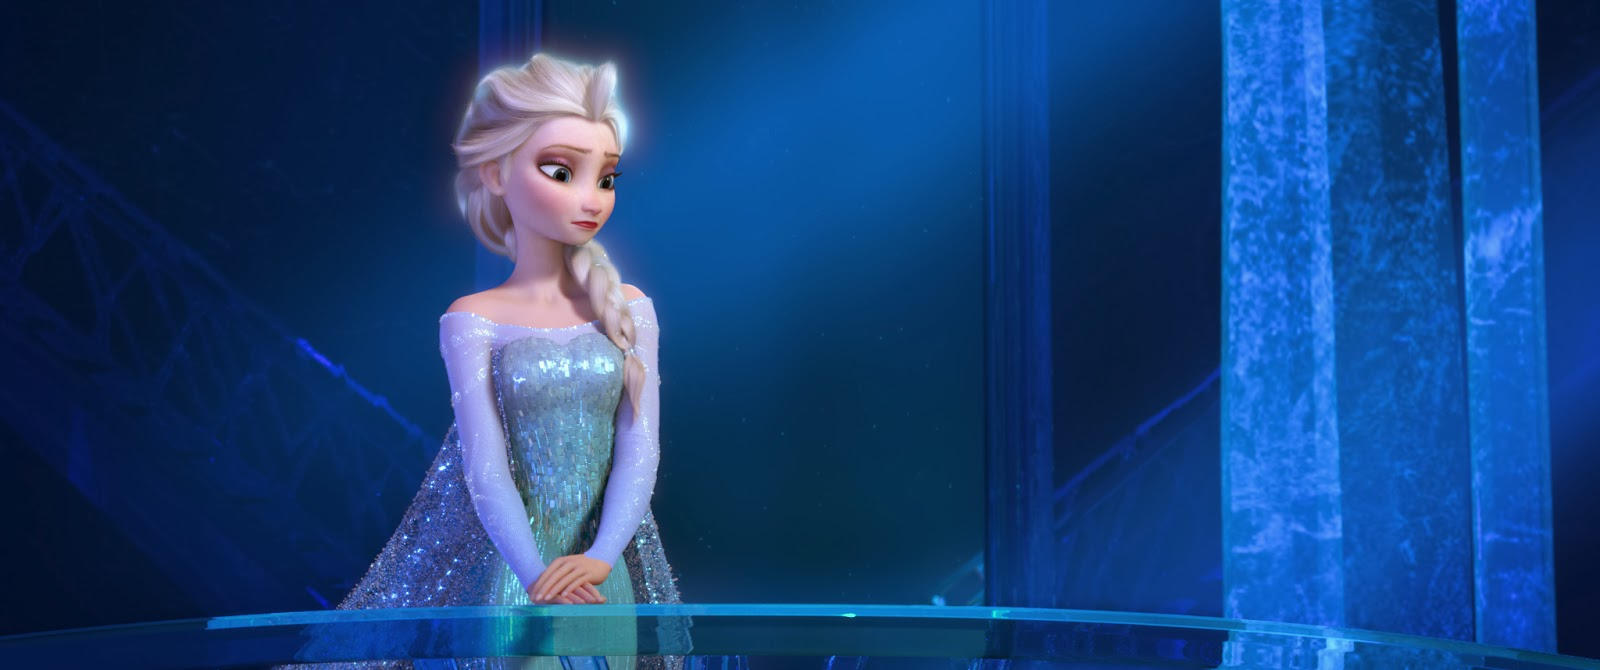 Frozen Disney movie animatedfilmreviews.filminspector.com